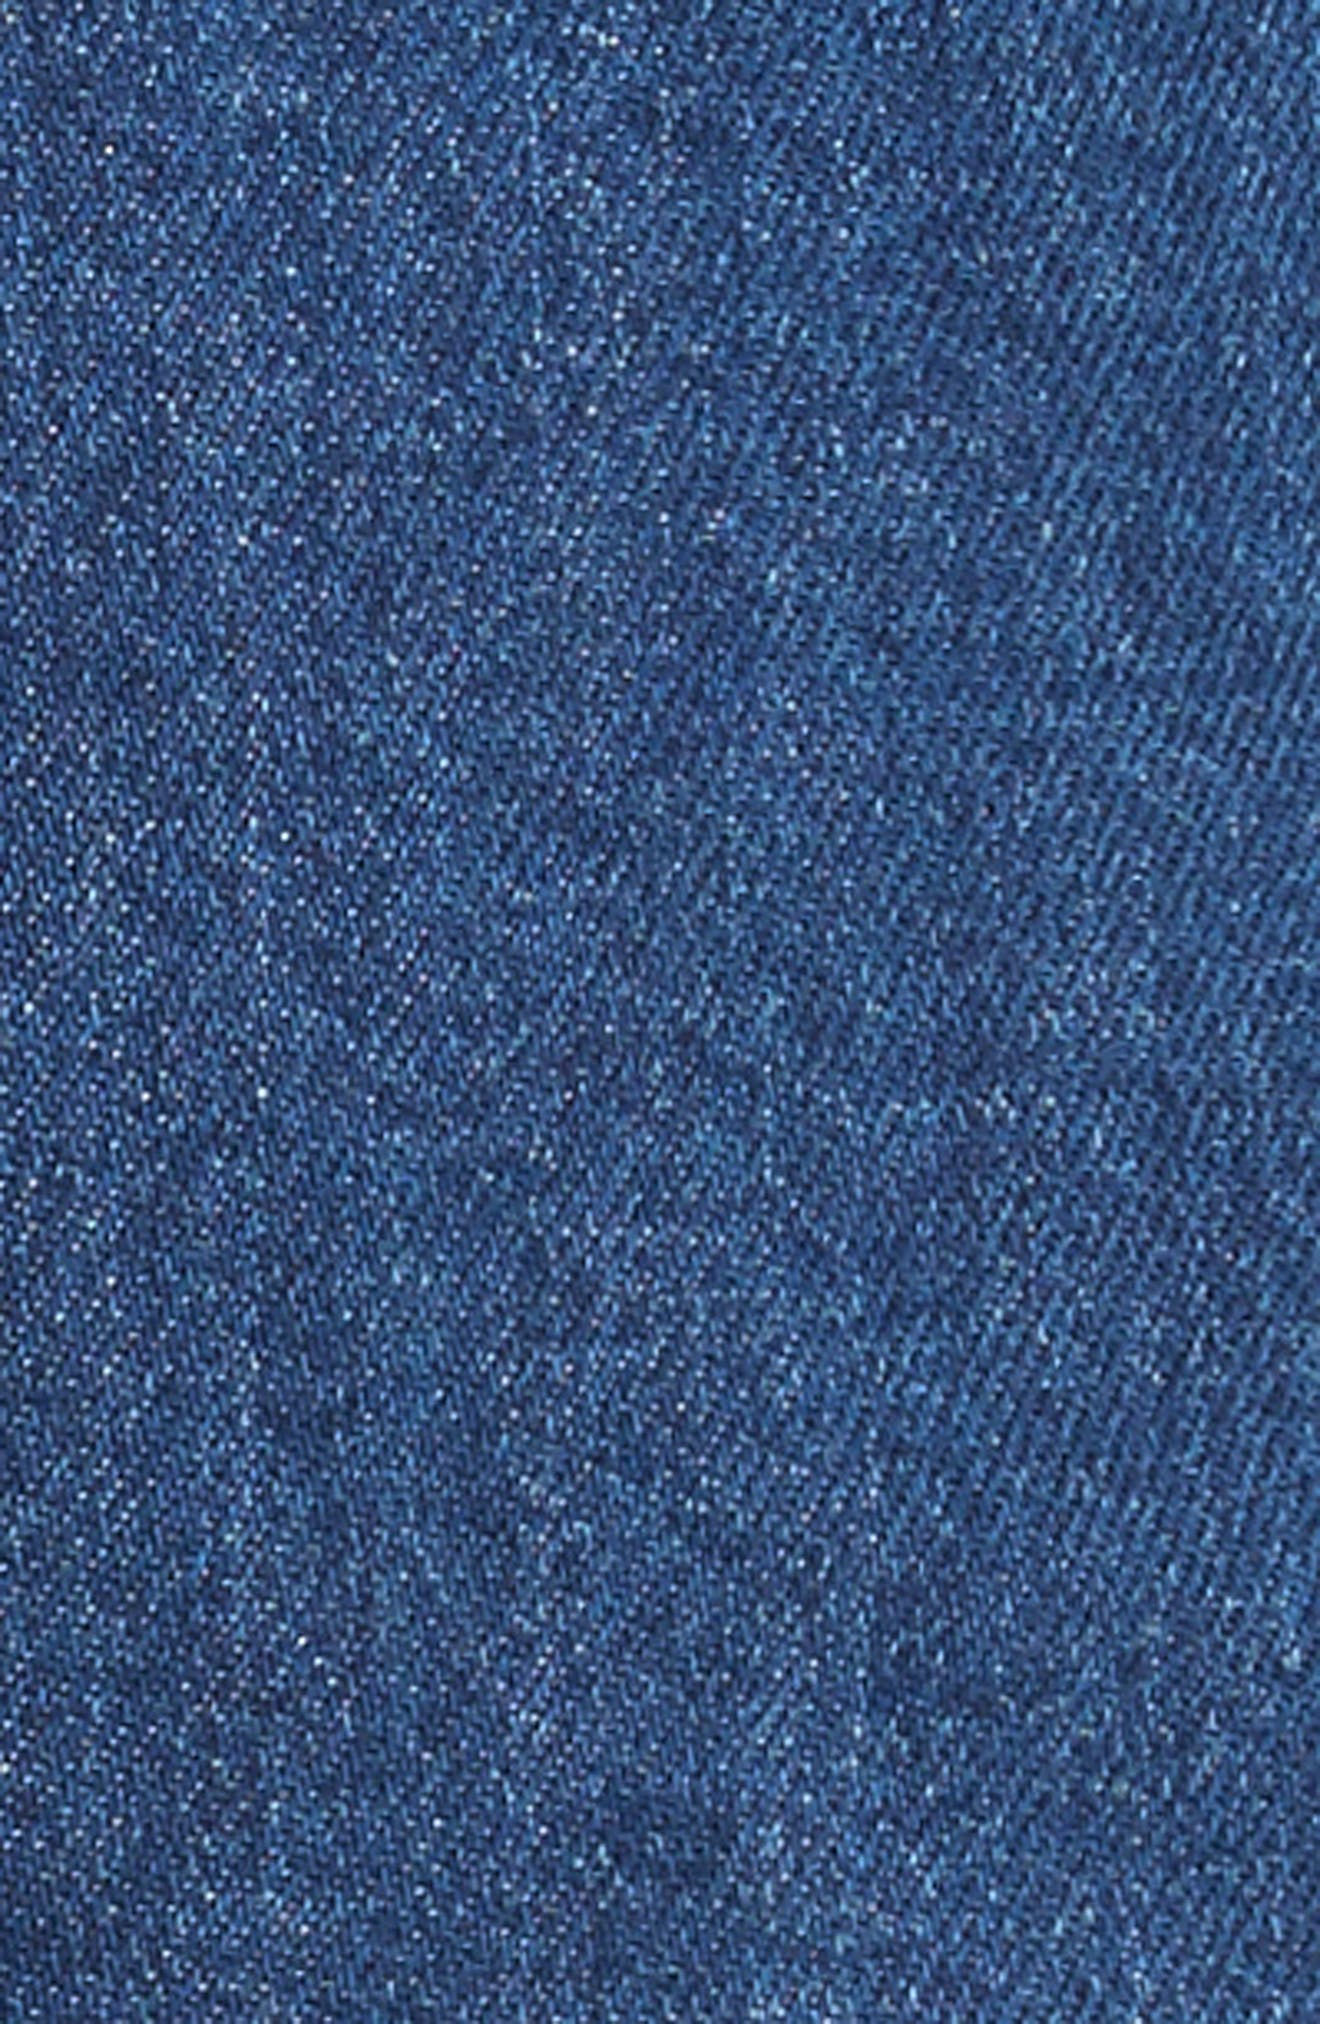 Alternate Image 5  - THE GREAT. The Slouch Sailor Jeans (Vibrant Blue)